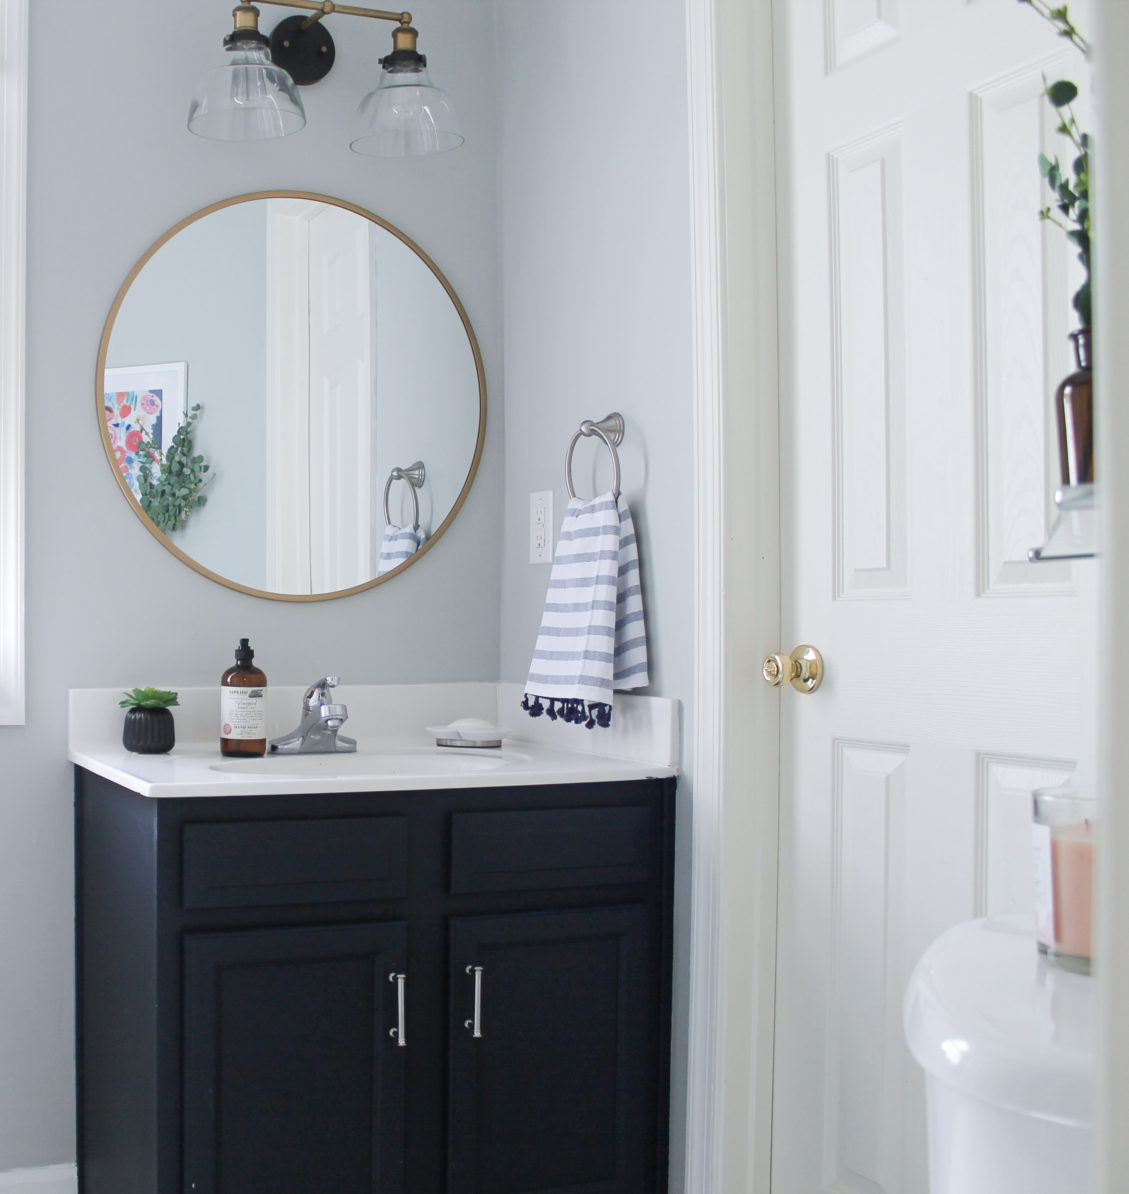 Modern Navy and White Bathroom Renovation including DIY painted vanity, painted vinyl floors and mixed metals